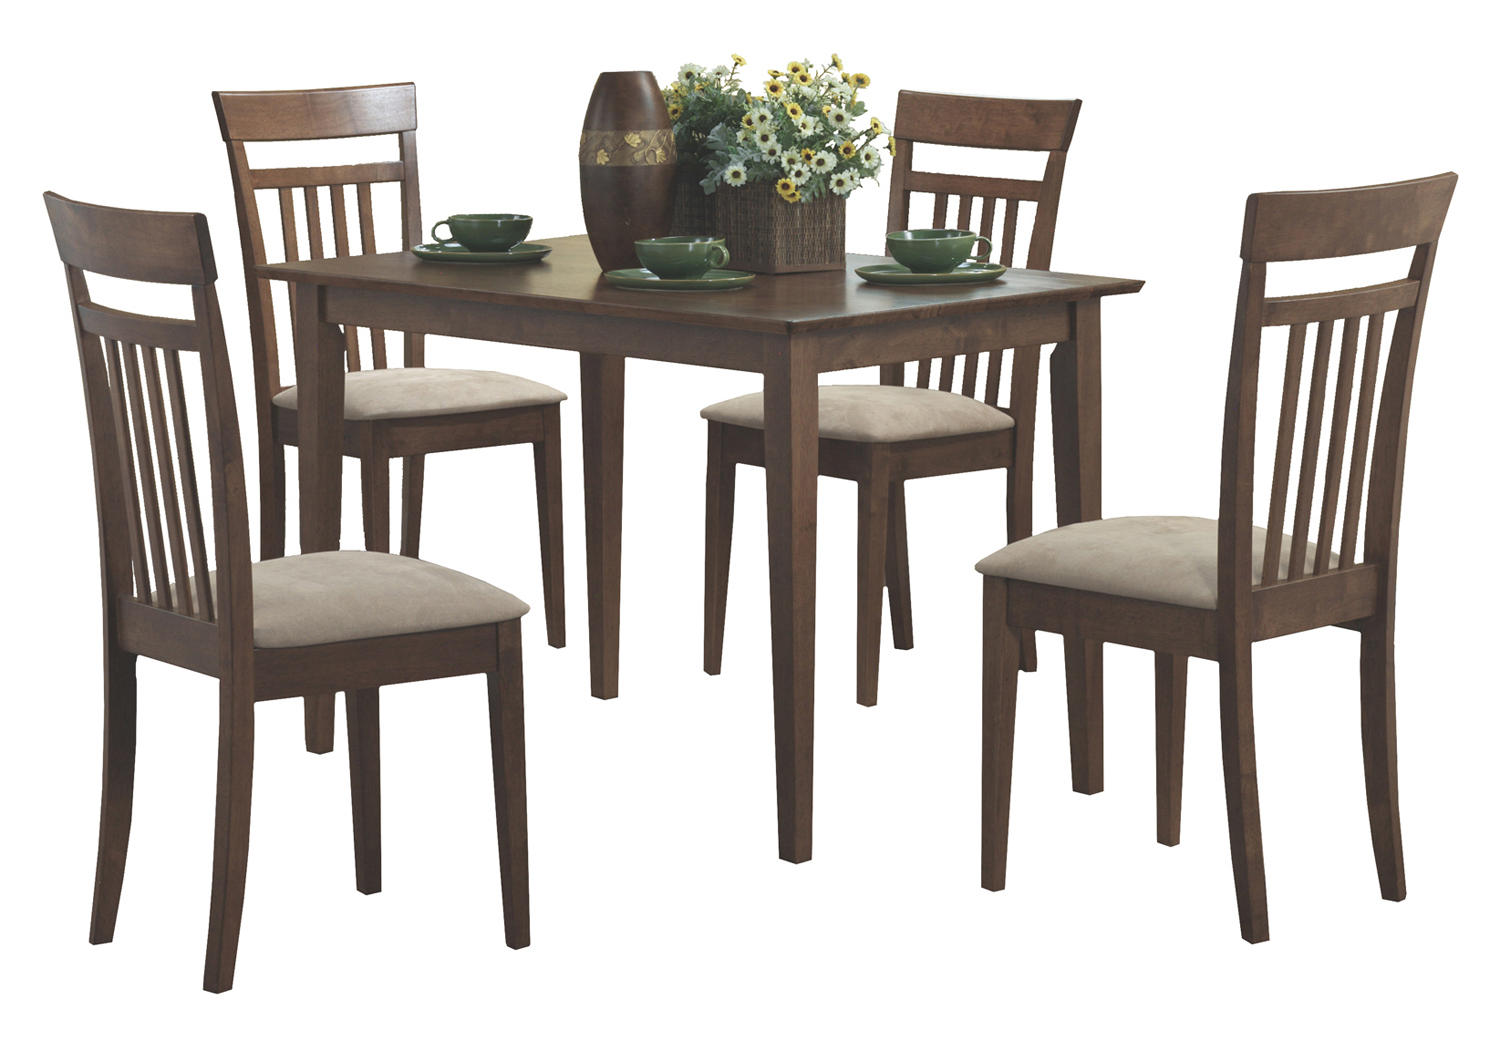 Dining Set - 5 Pieces Set / Walnut Finish